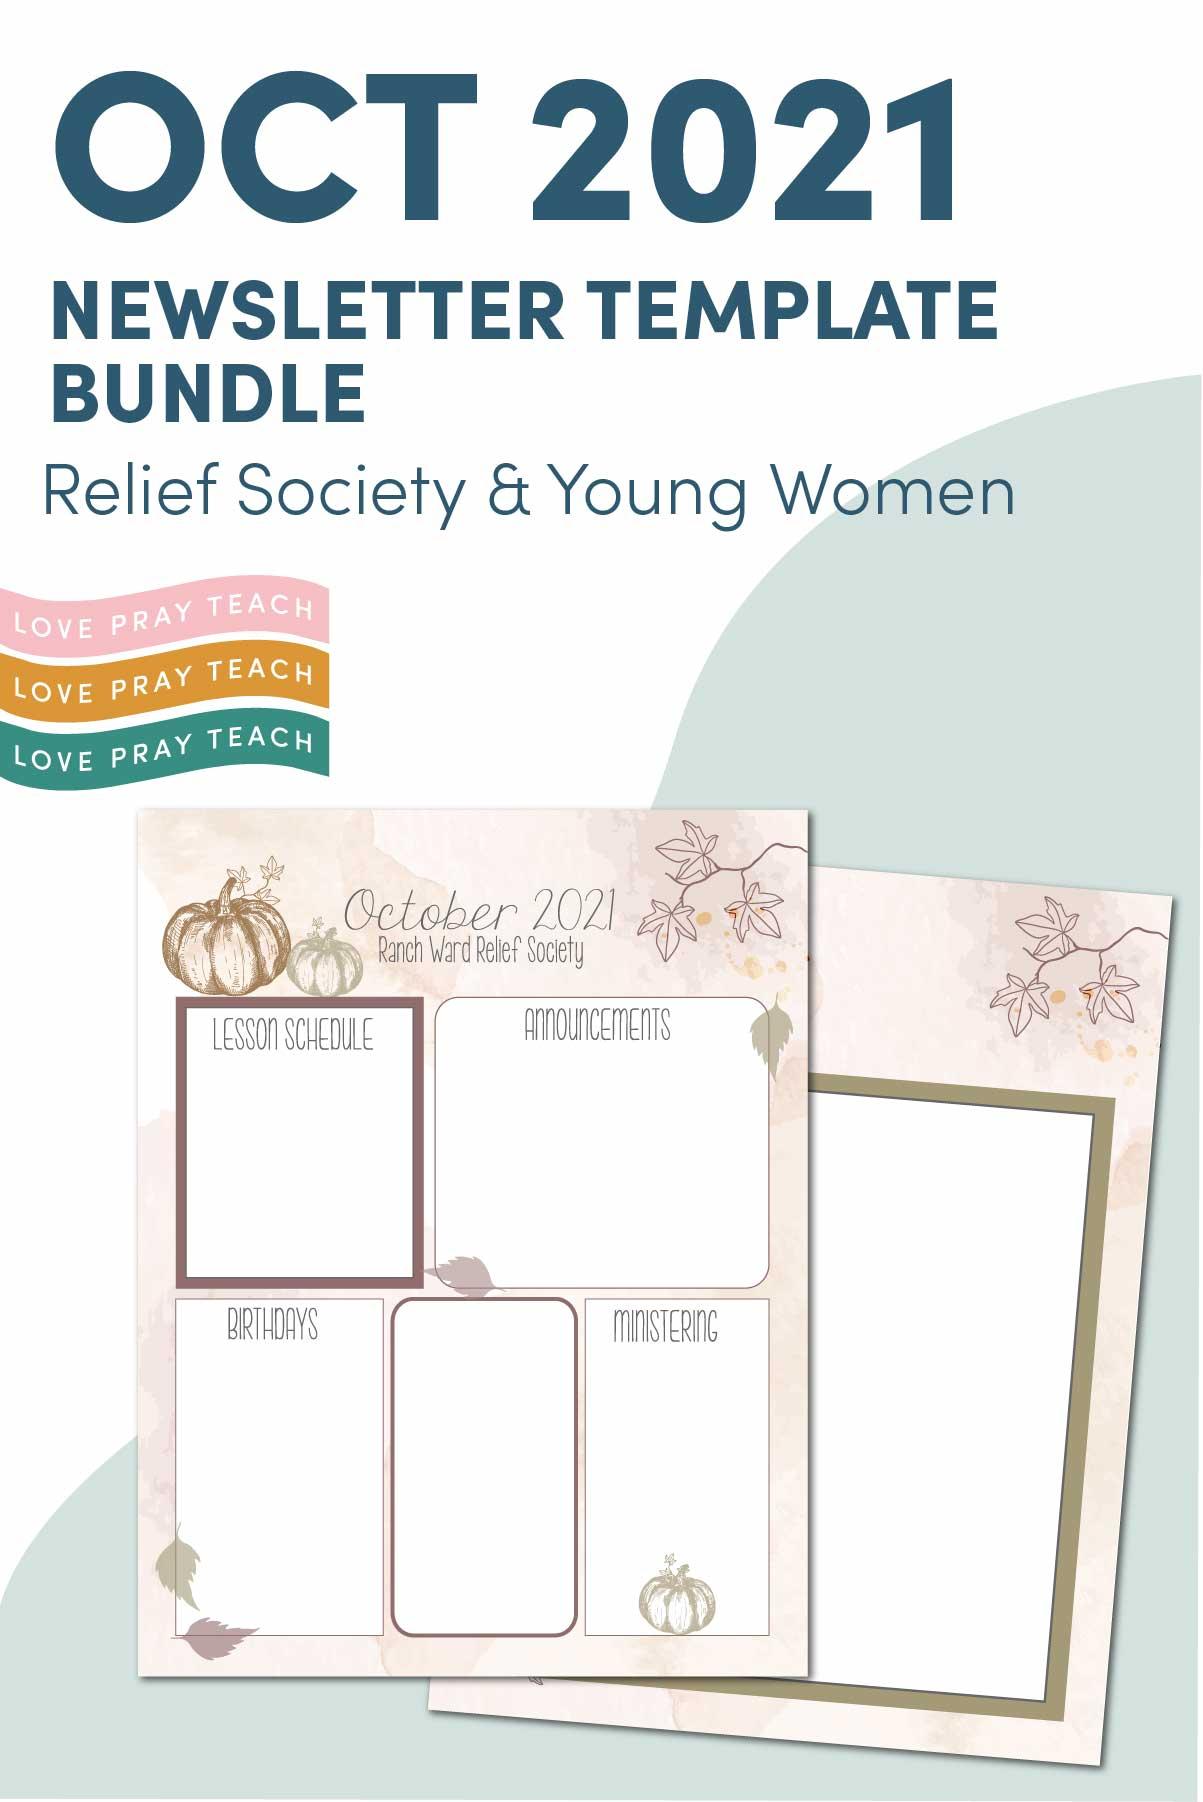 October 2021 Editable Newsletter Template for Relief Society and Young Women www.LovePrayTeach.com